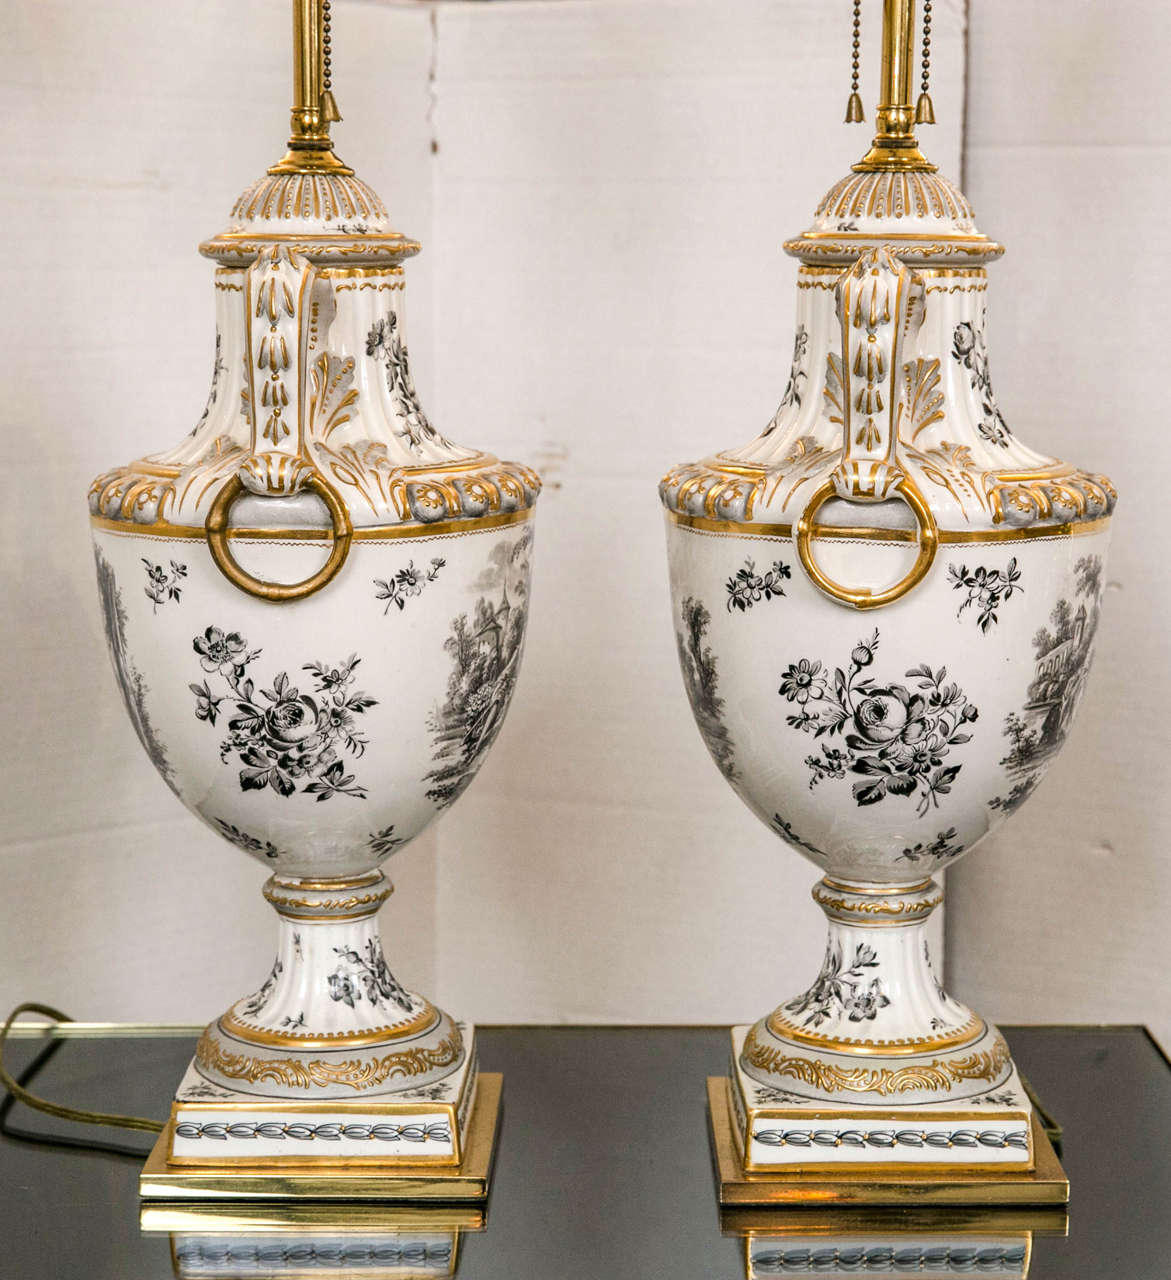 Pair of 19th Century French Porcelain Urns as Table Lamps For Sale 2